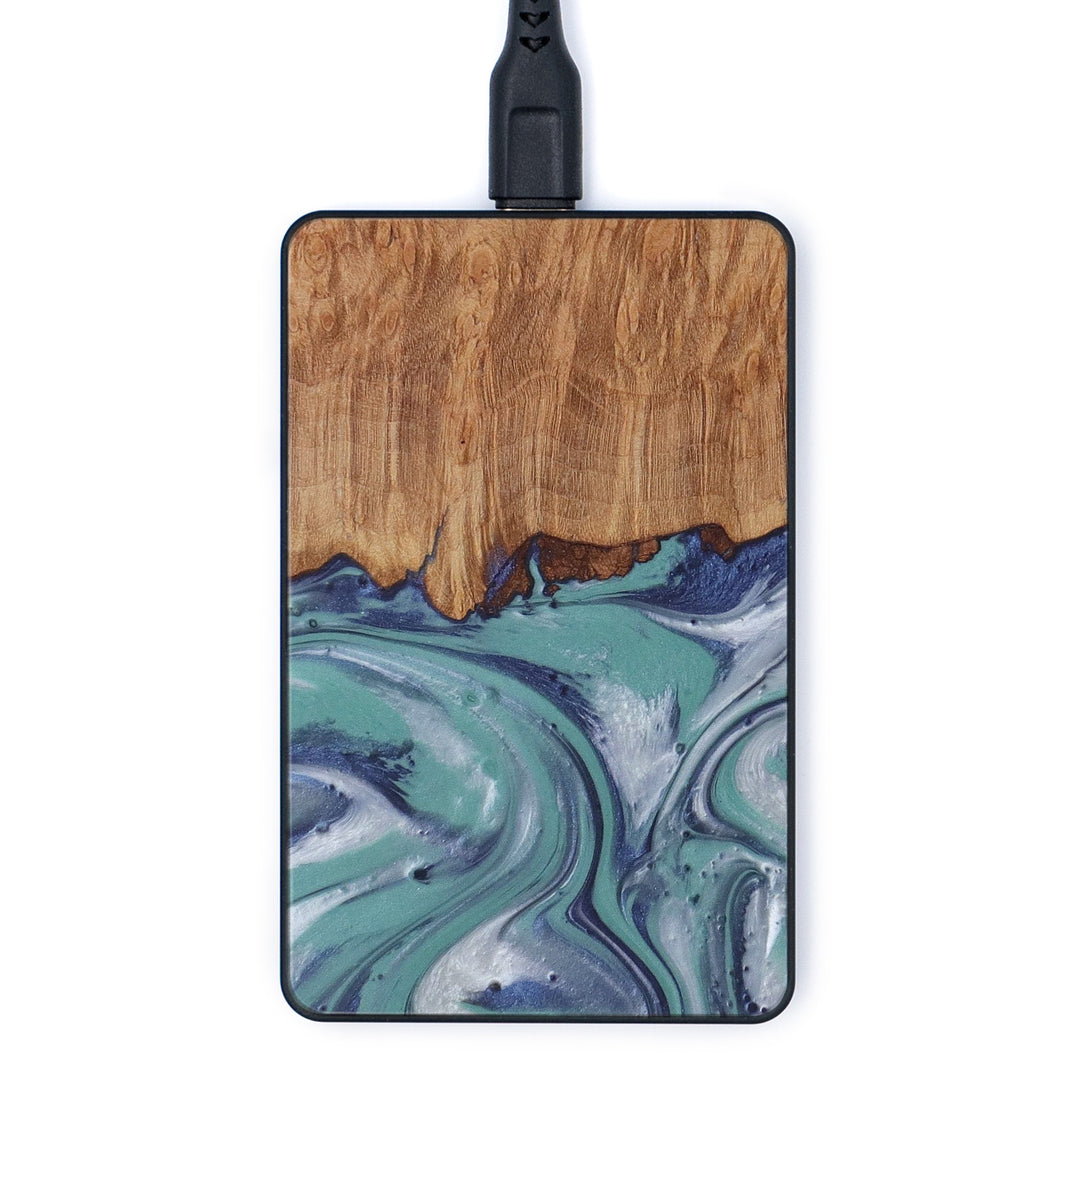 Thin Wood+Resin Wireless Charger - Thi (Light Blue, 420529)